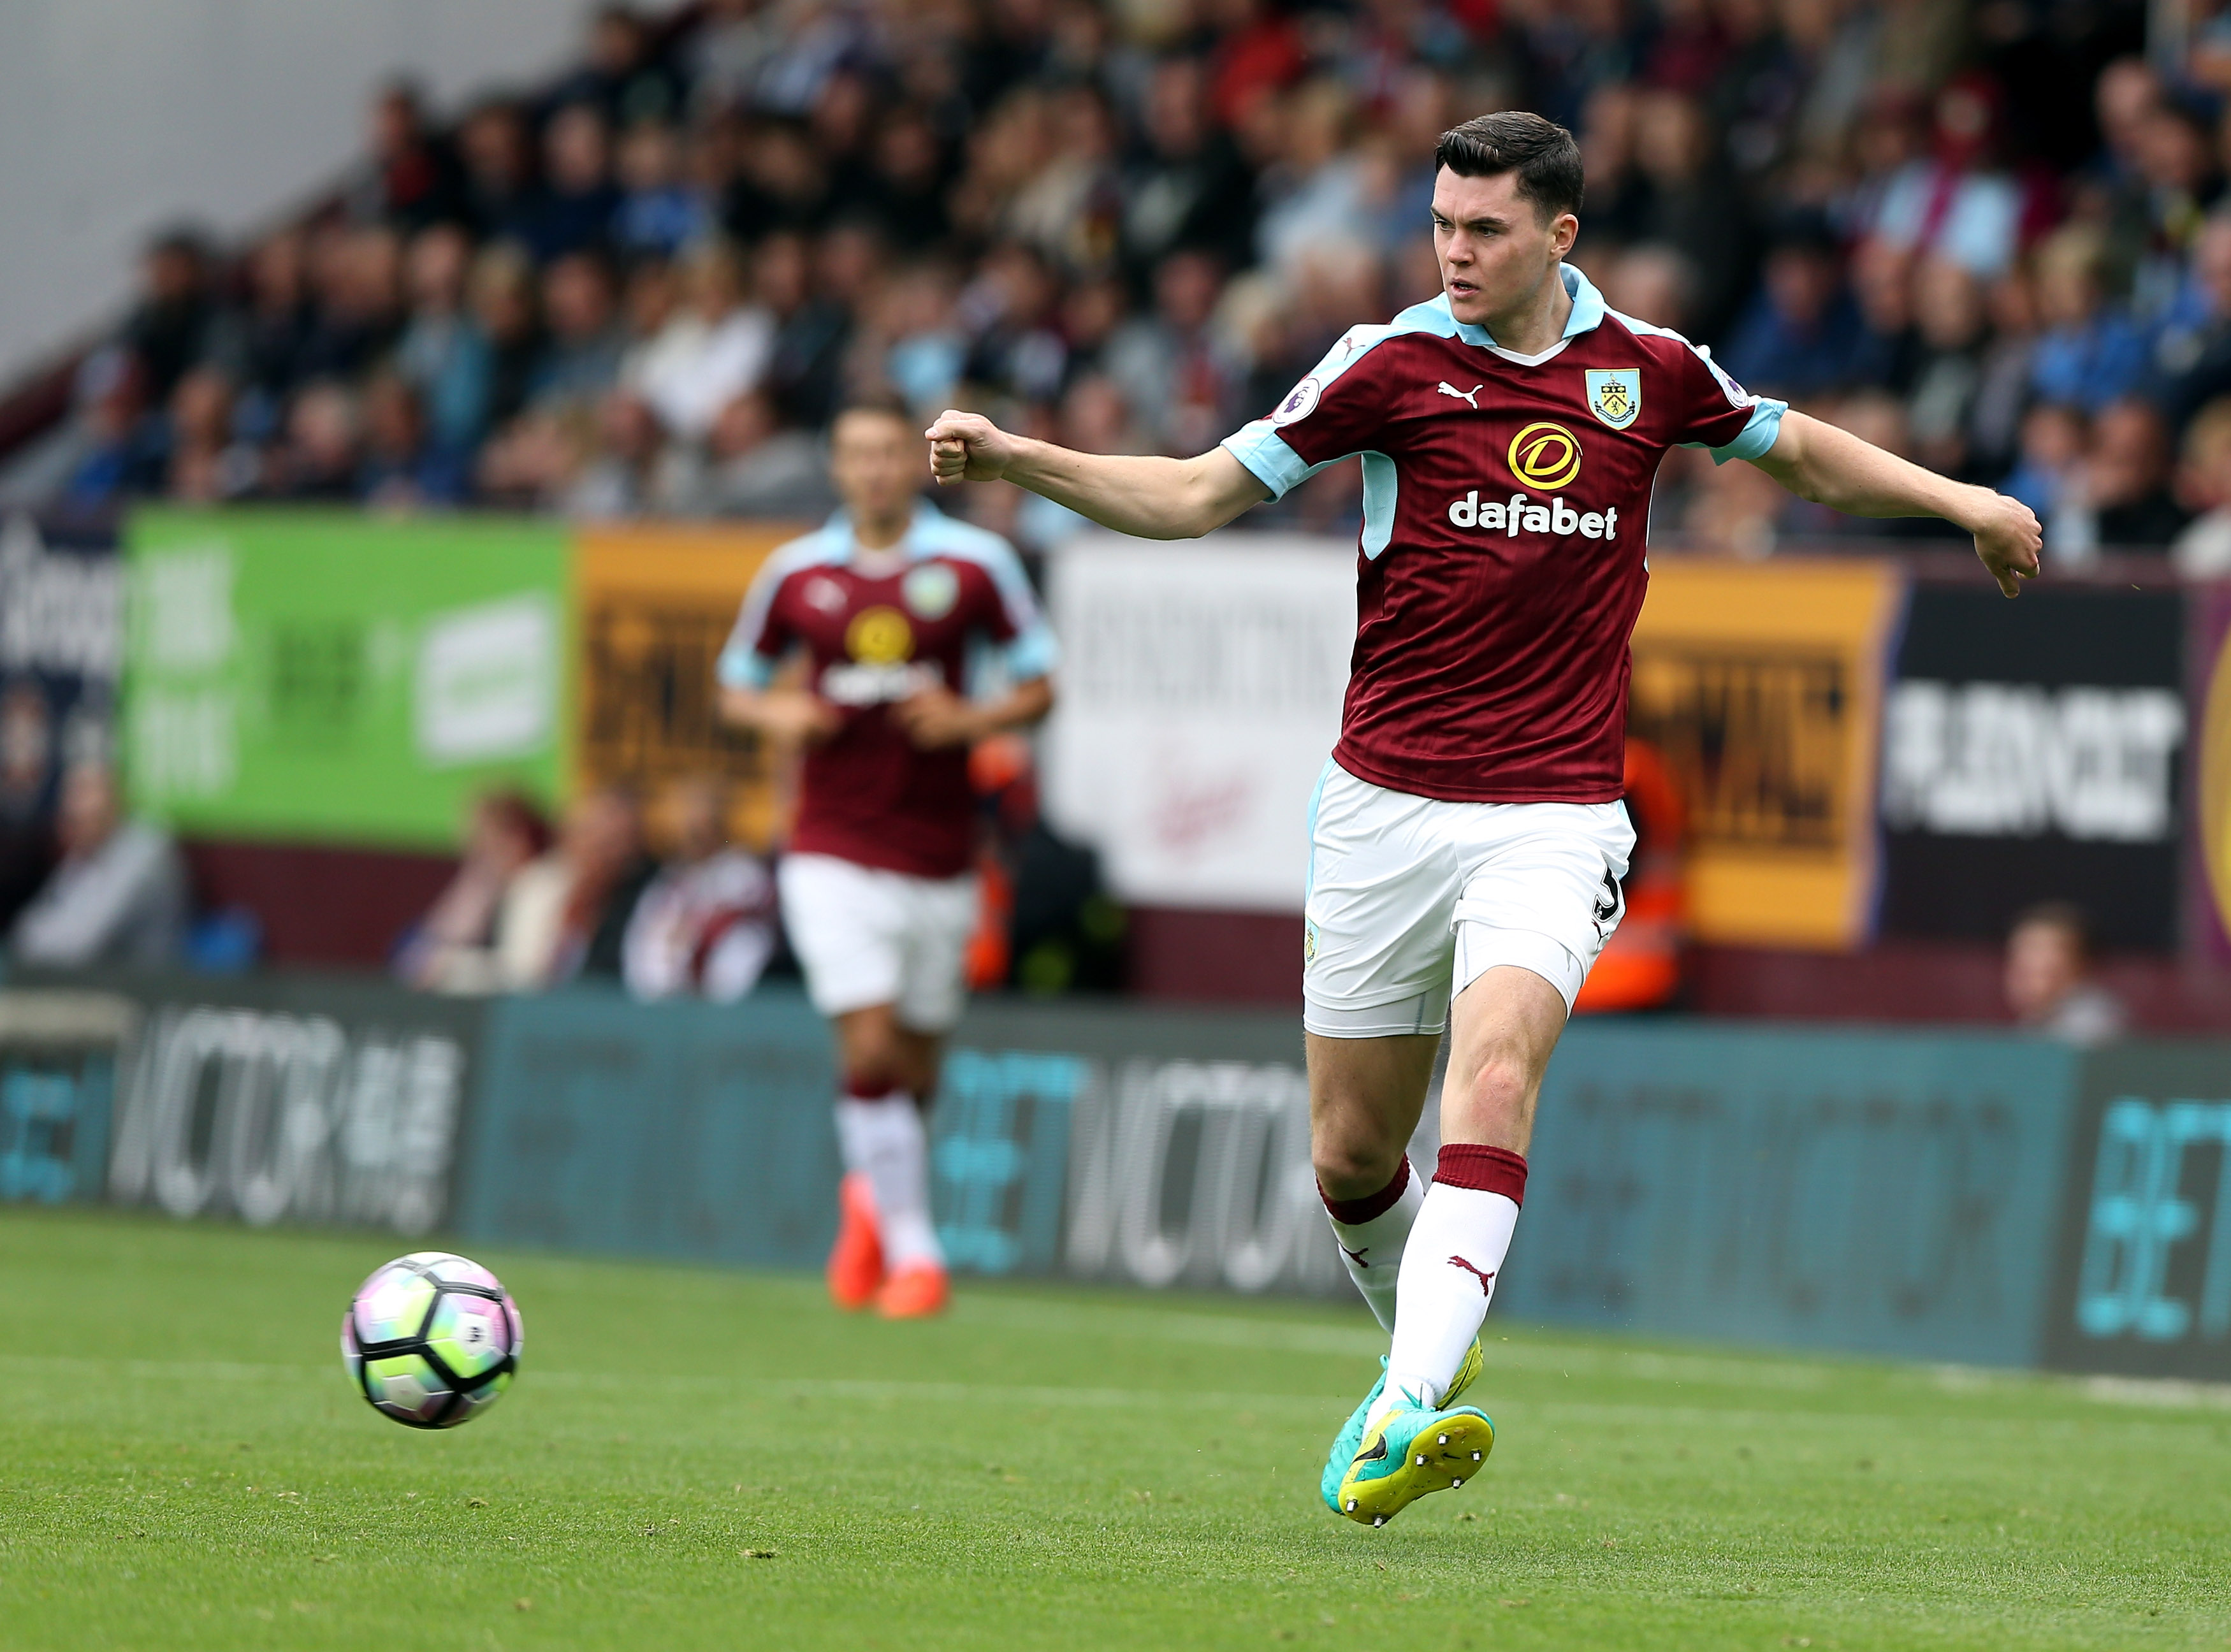 Manchester United could earn £5million from Michael Keane's Chelsea transfer